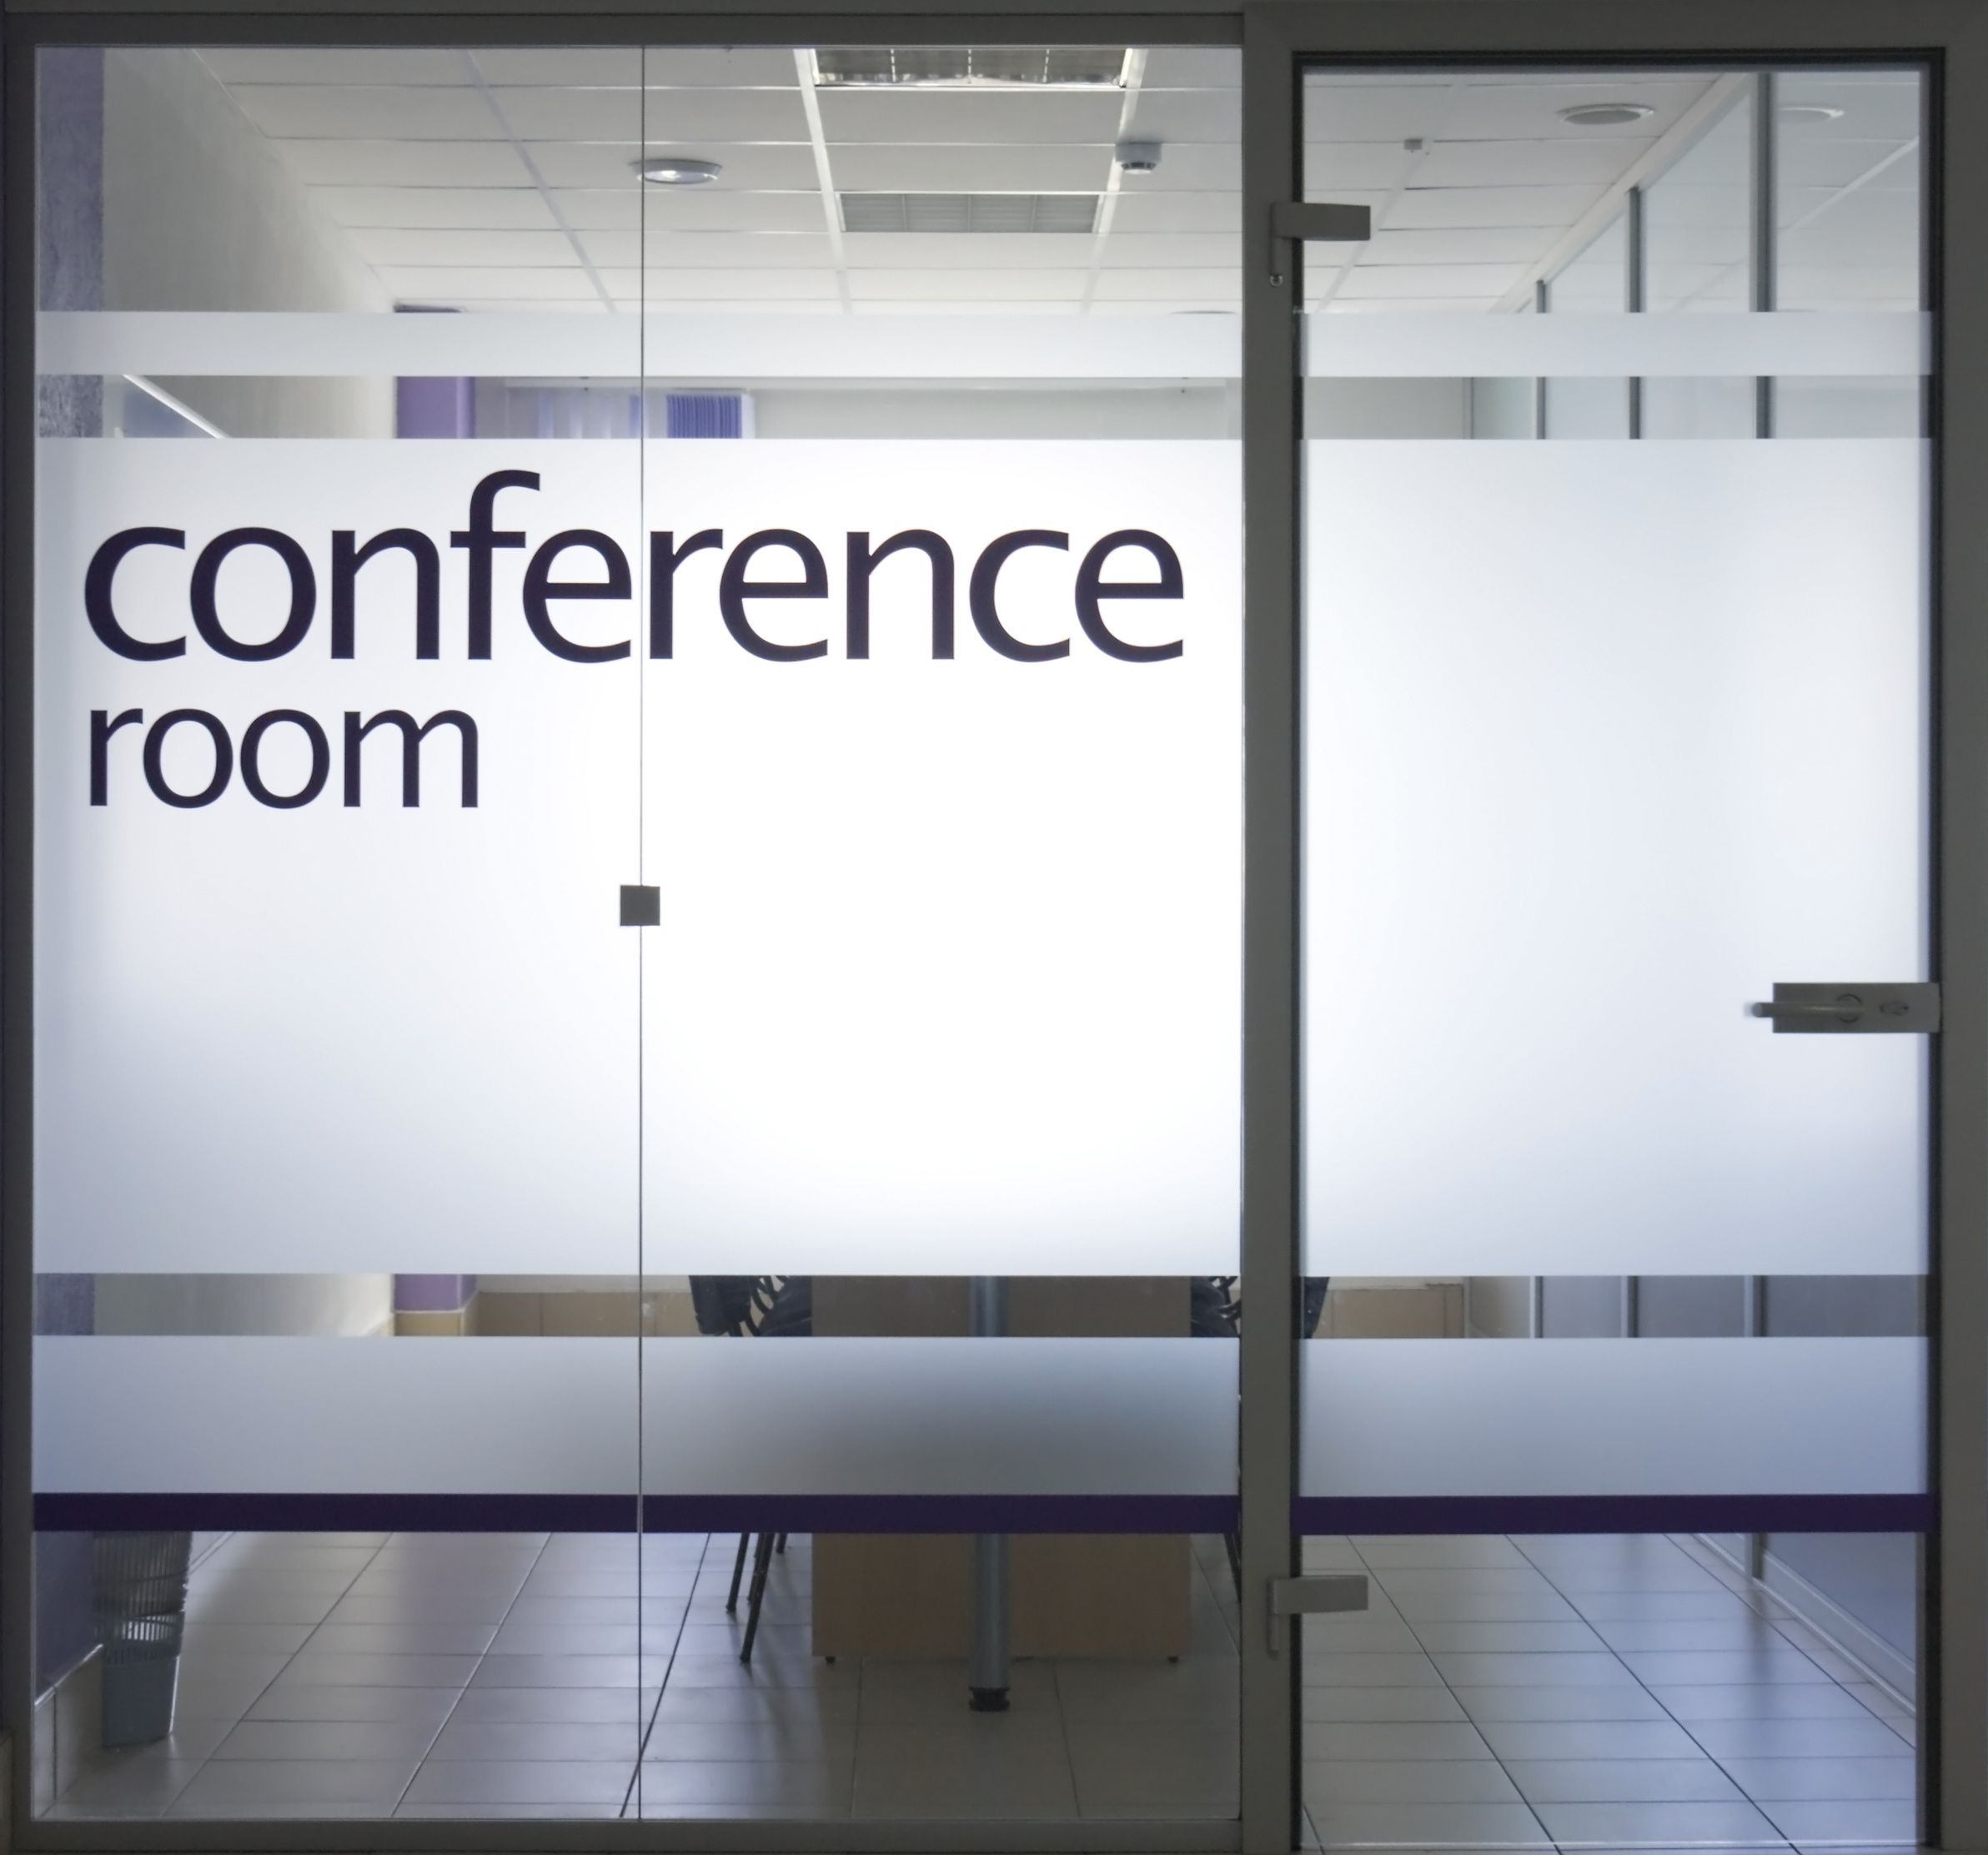 Glass door and window into conference room | Commercial ...